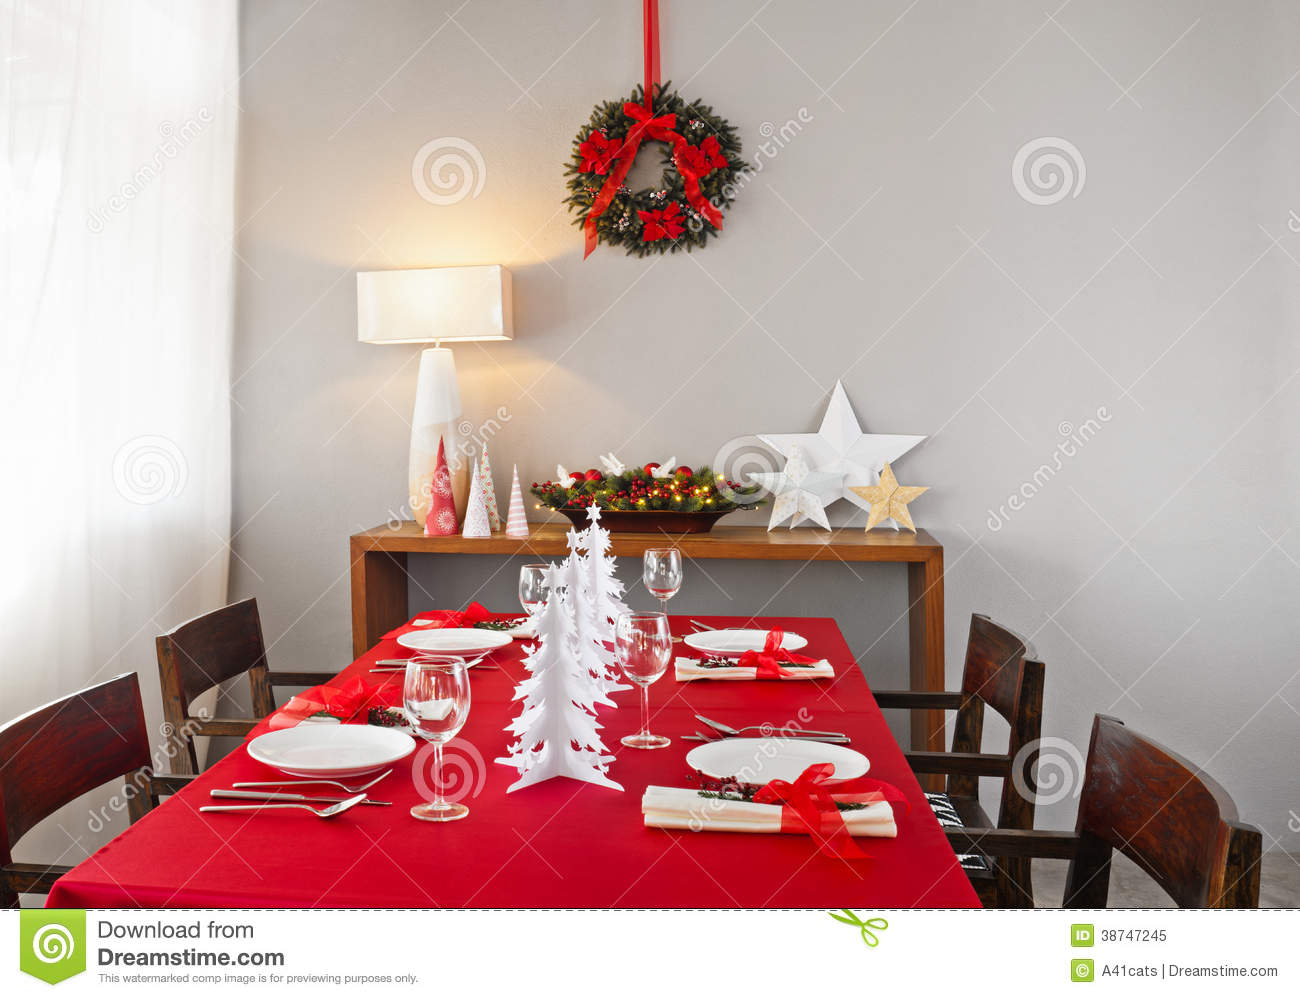 Christmas Dinner Table Setup Royalty Free Stock